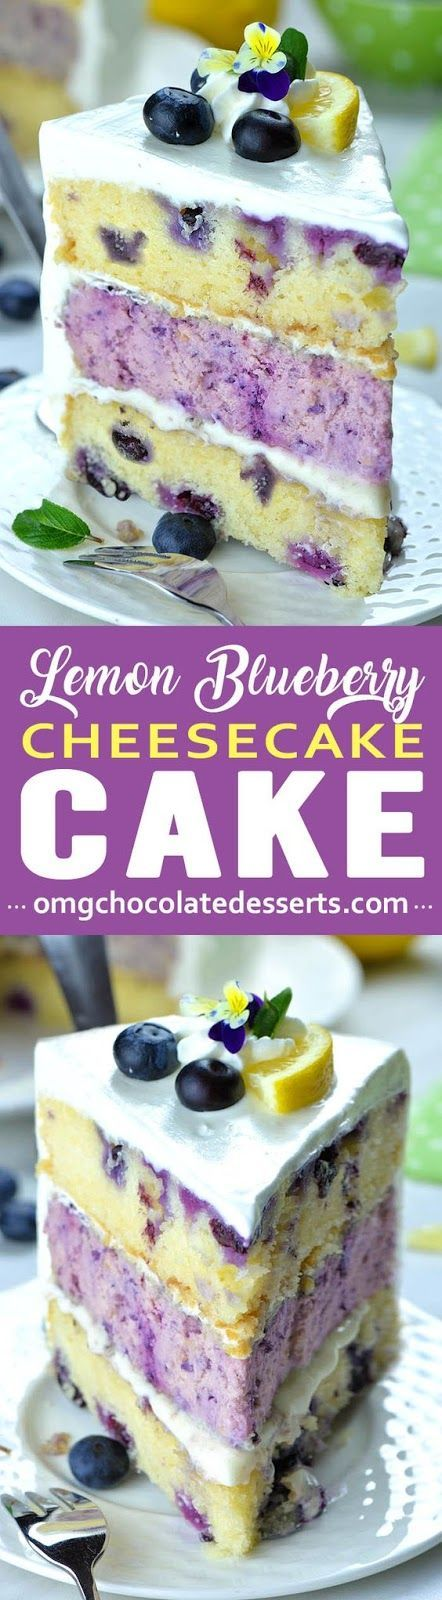 Lemon Blueberry Cheesecake Cake Lemon Blueberry Cheesecake Cake is refreshing, spring and summer dessert assembled of moist lemon cake, blueberry cheesecake and cream cheese frosting.